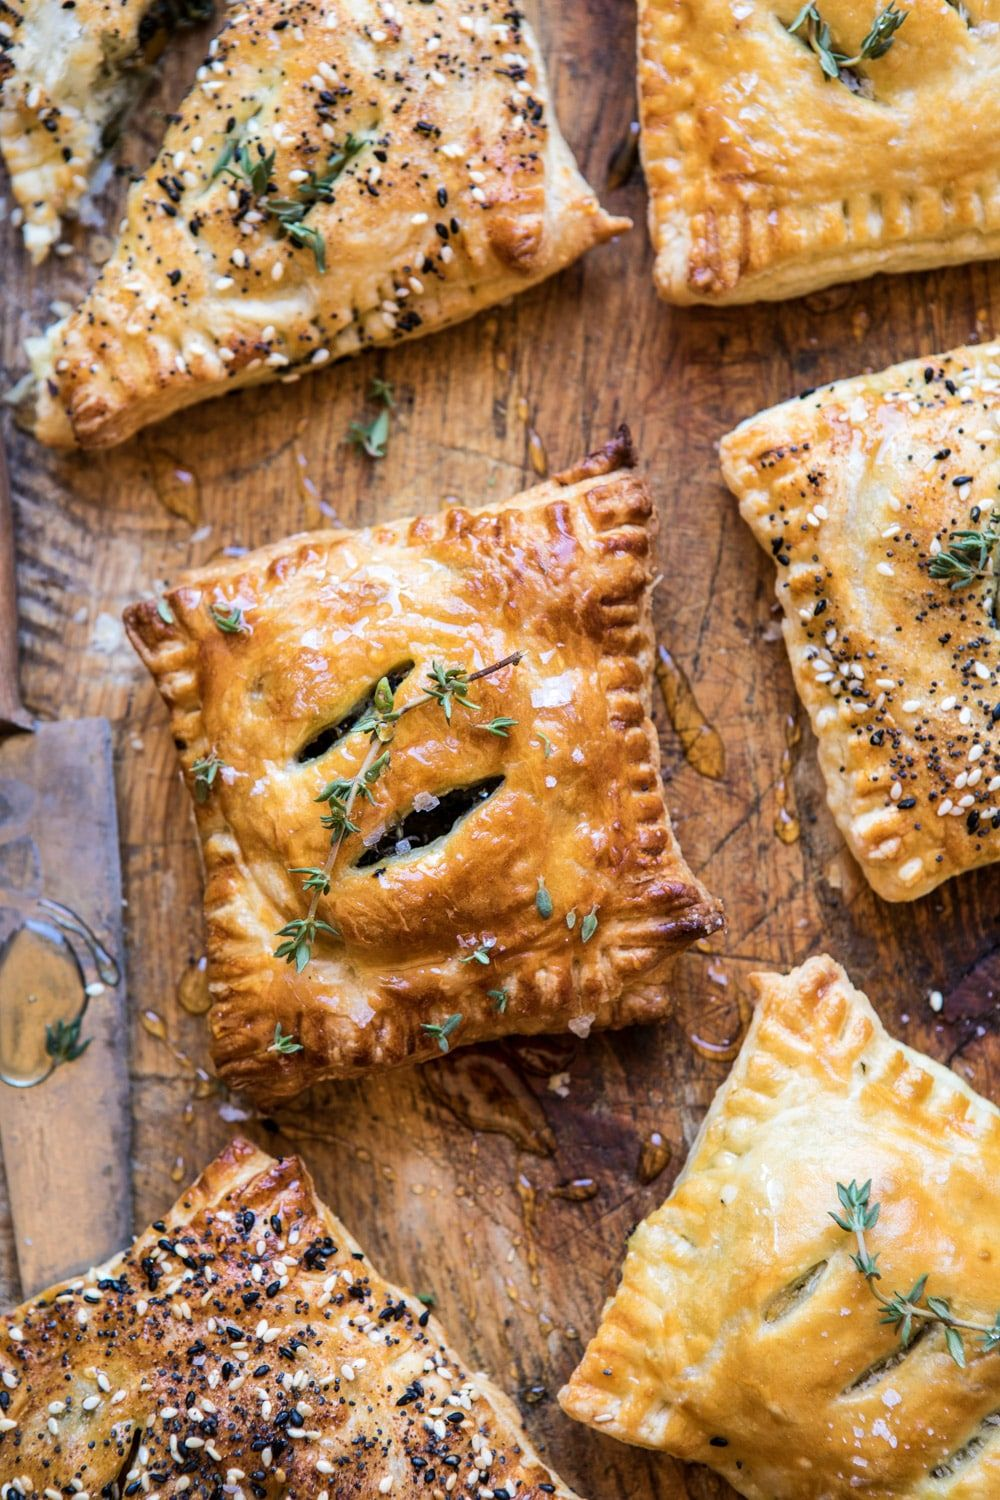 Caramelized Onion Spinach And Cheddar Flaky Pastries